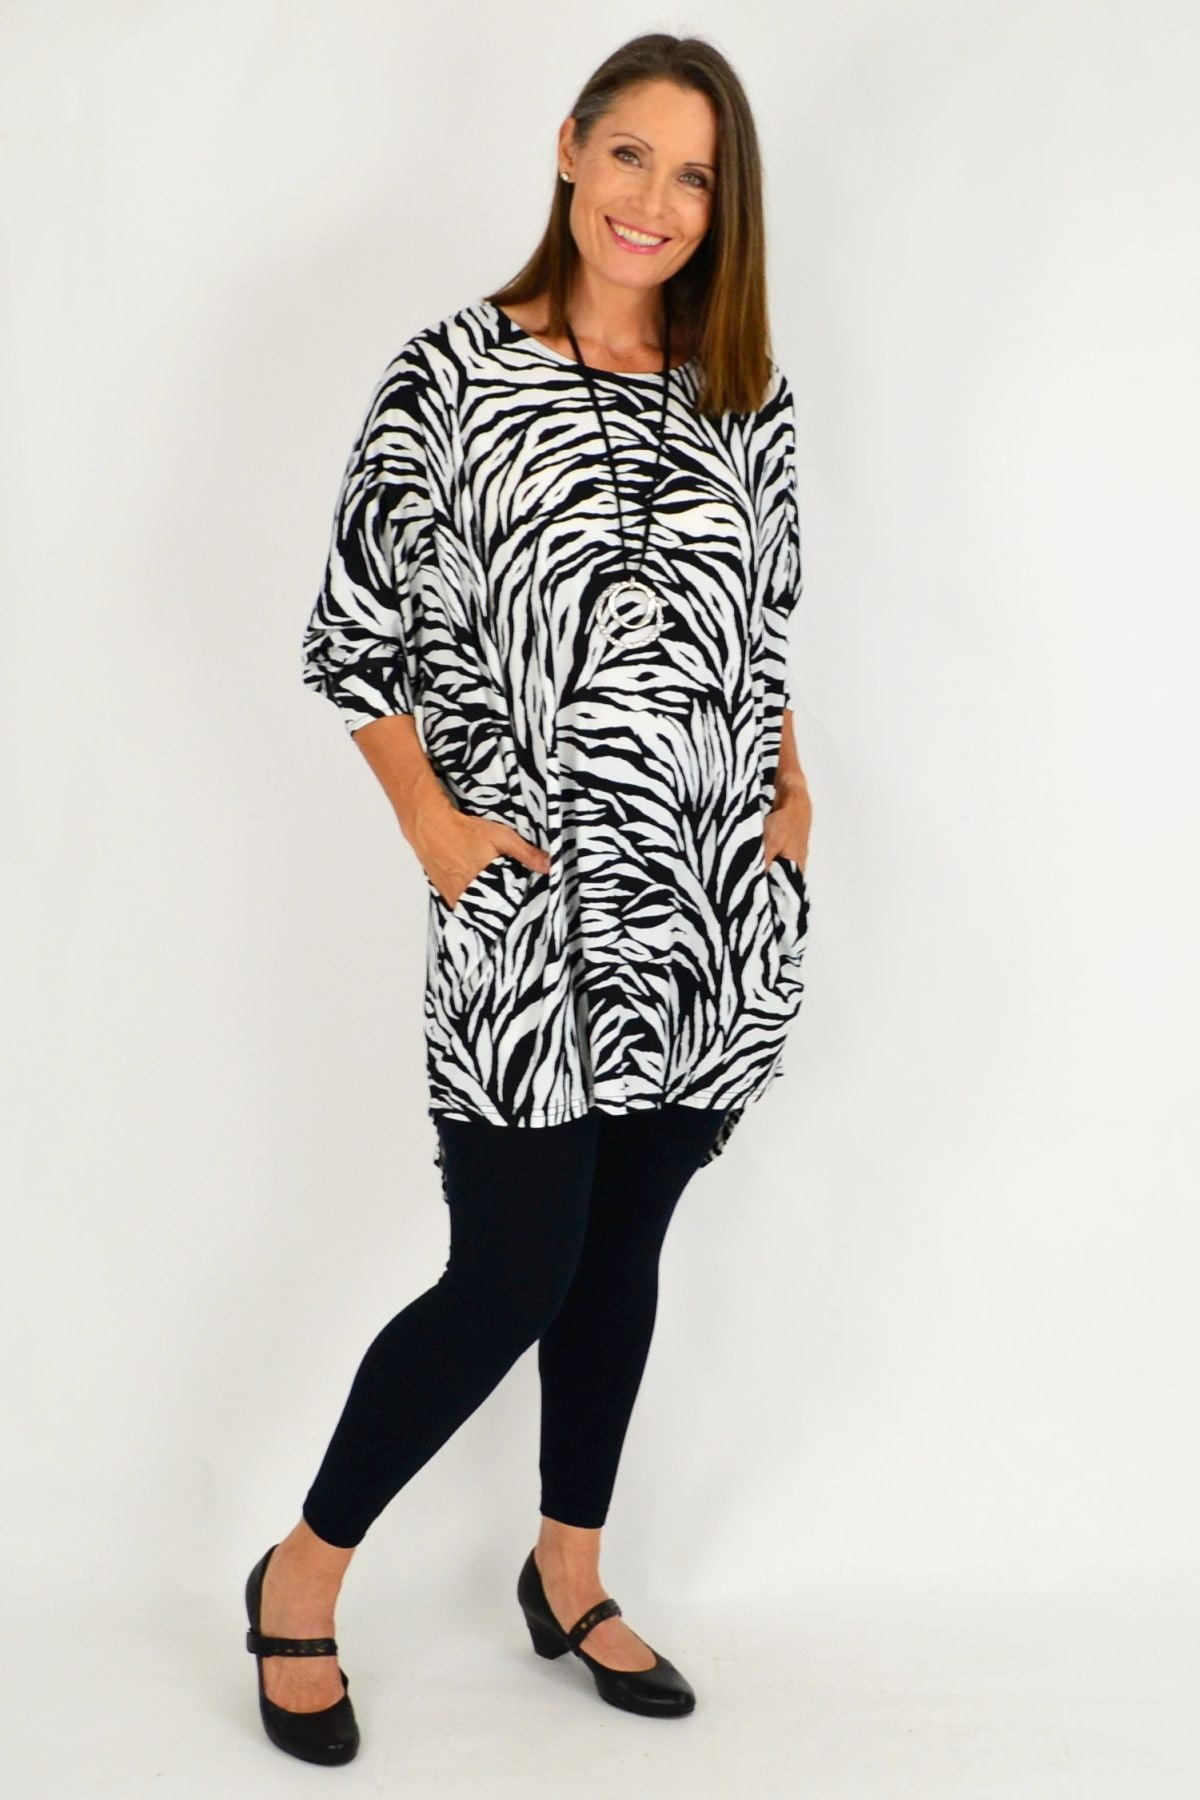 Relaxed fit tunic top